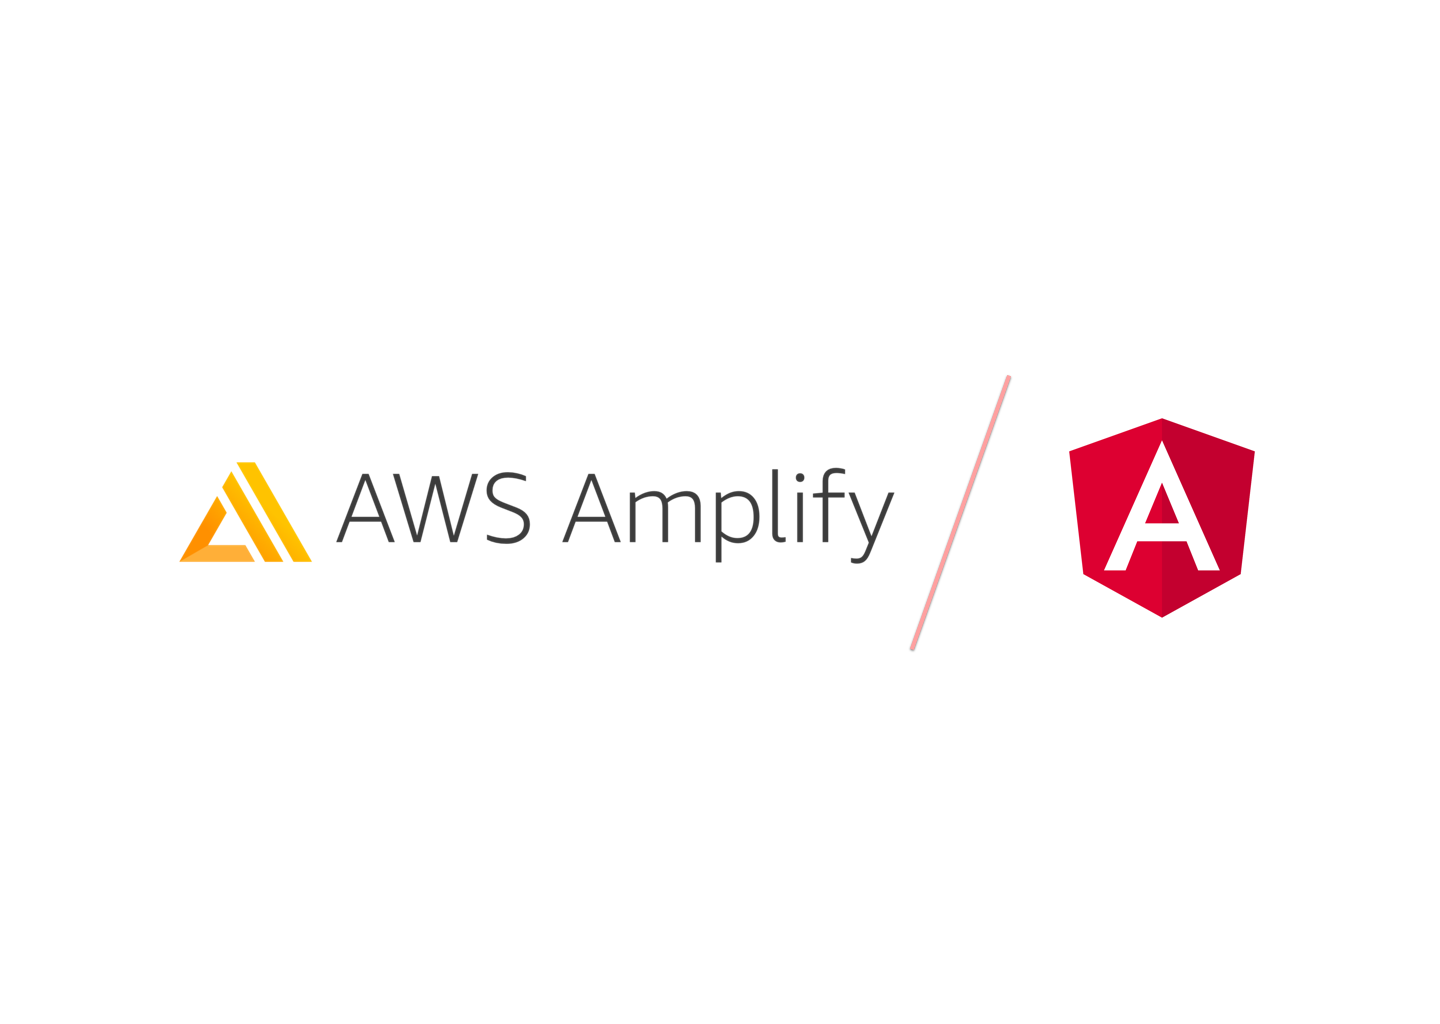 Part 1 - Building a serverless web app with AWS Amplify and Angular